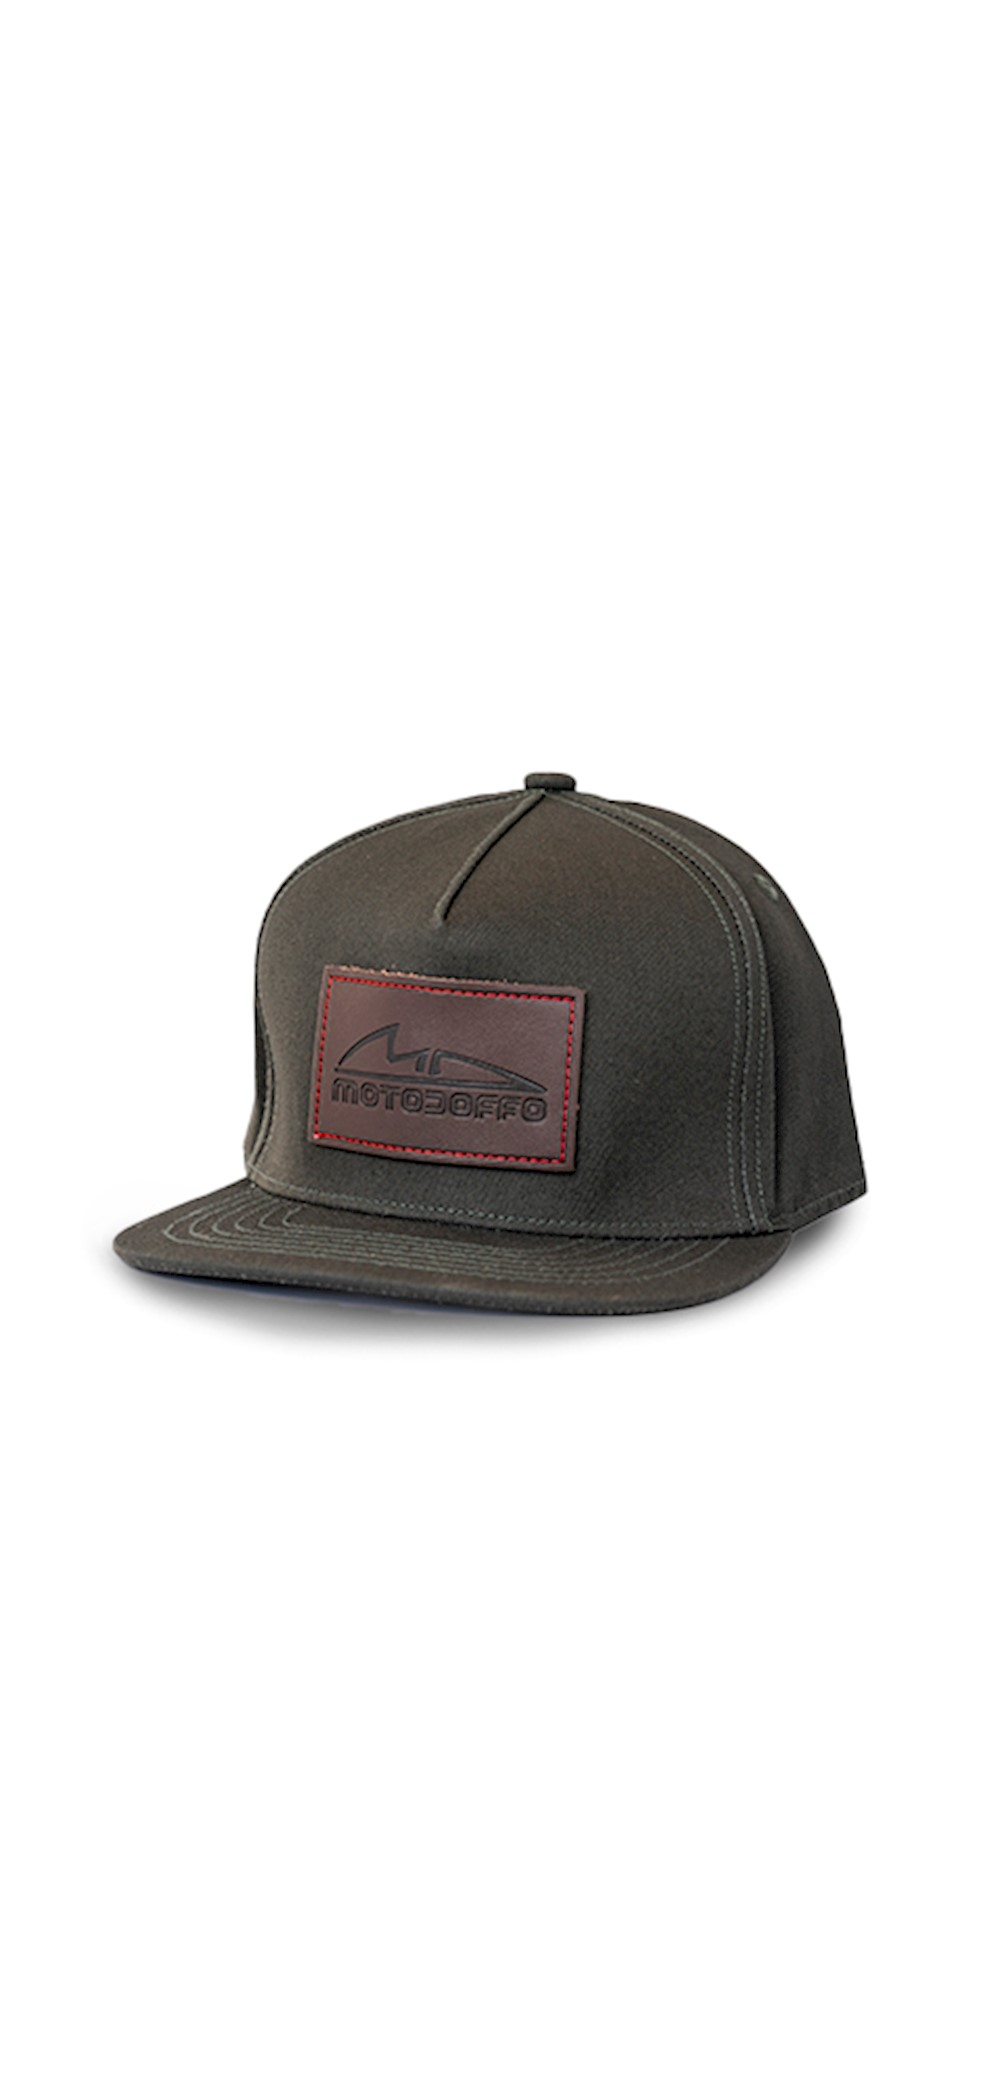 MotoDoffo Leather Patch Fitted Hat THUMBNAIL